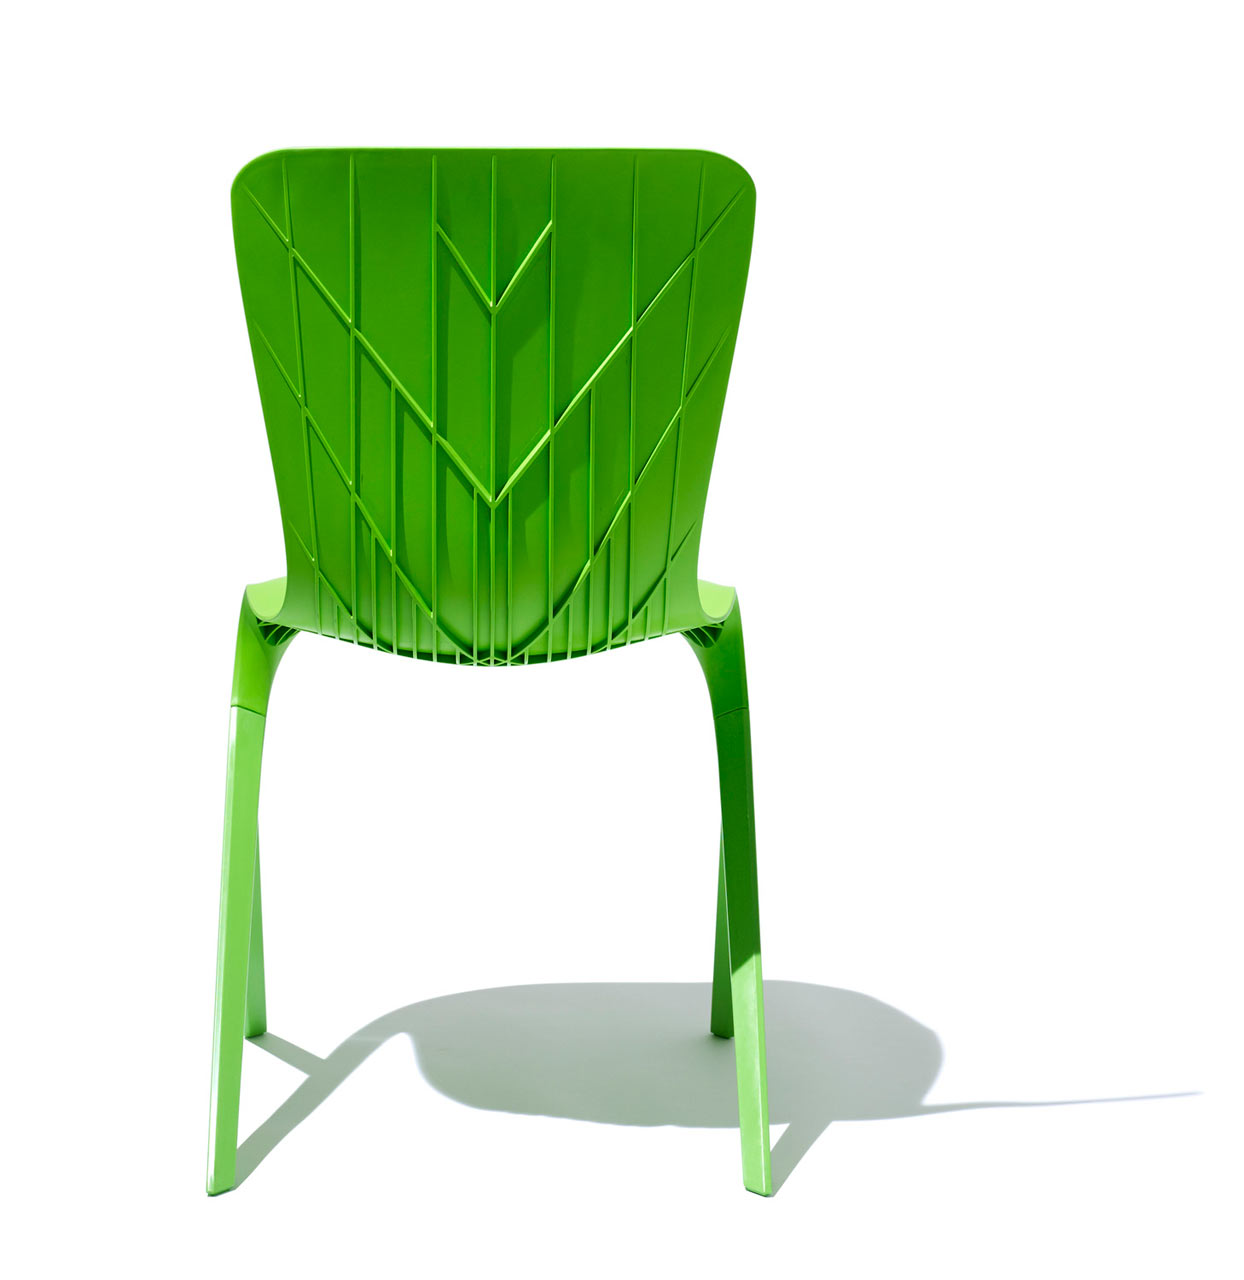 Knoll-David-Adjaye-Washington-14-Skin-Nylon-Chair